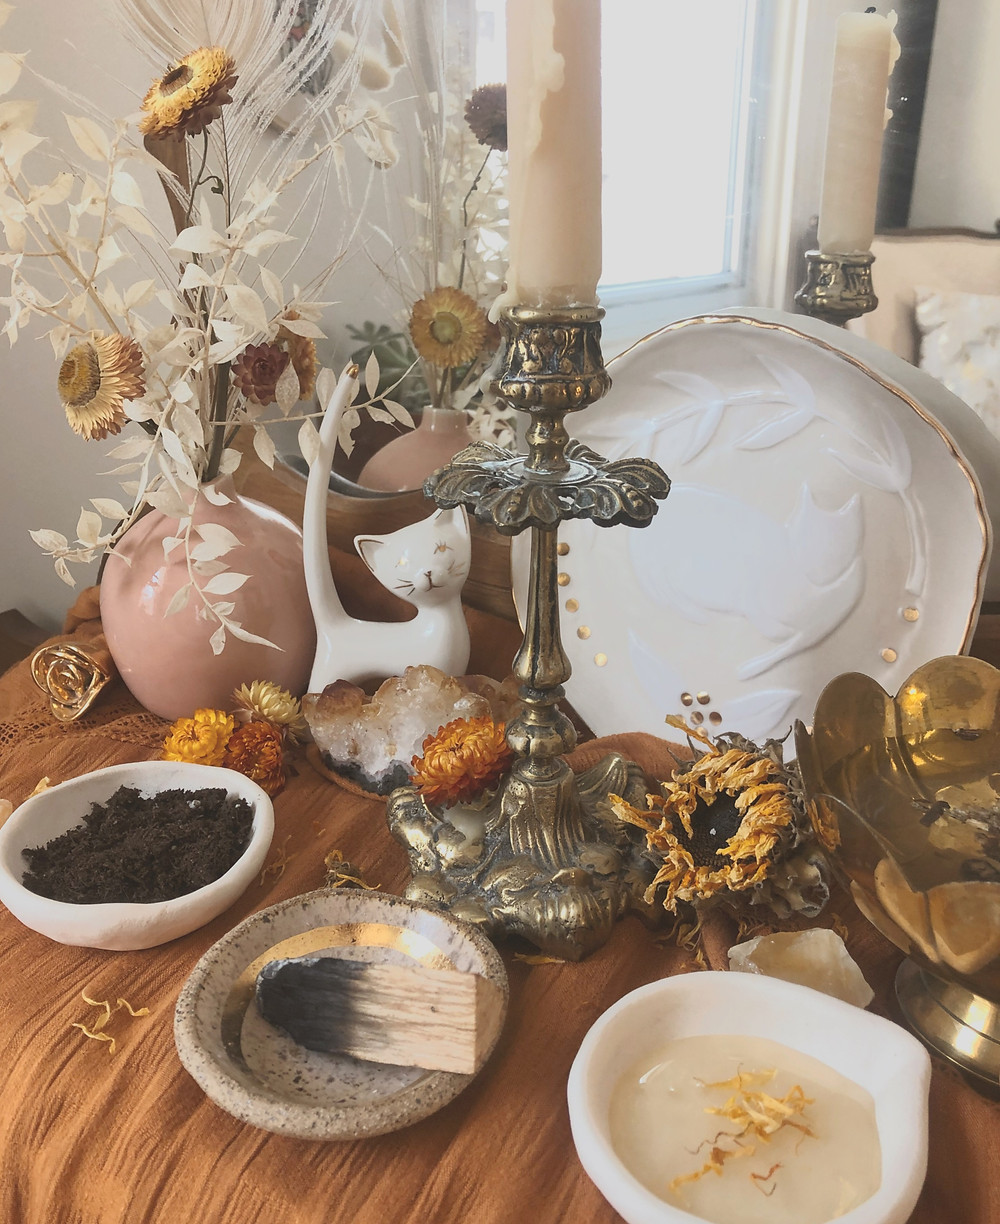 gold and yellow full moon altar with beeswax candle in antique brass, honey and calendula for offering, a bouquet of flowers, and the 4 elements